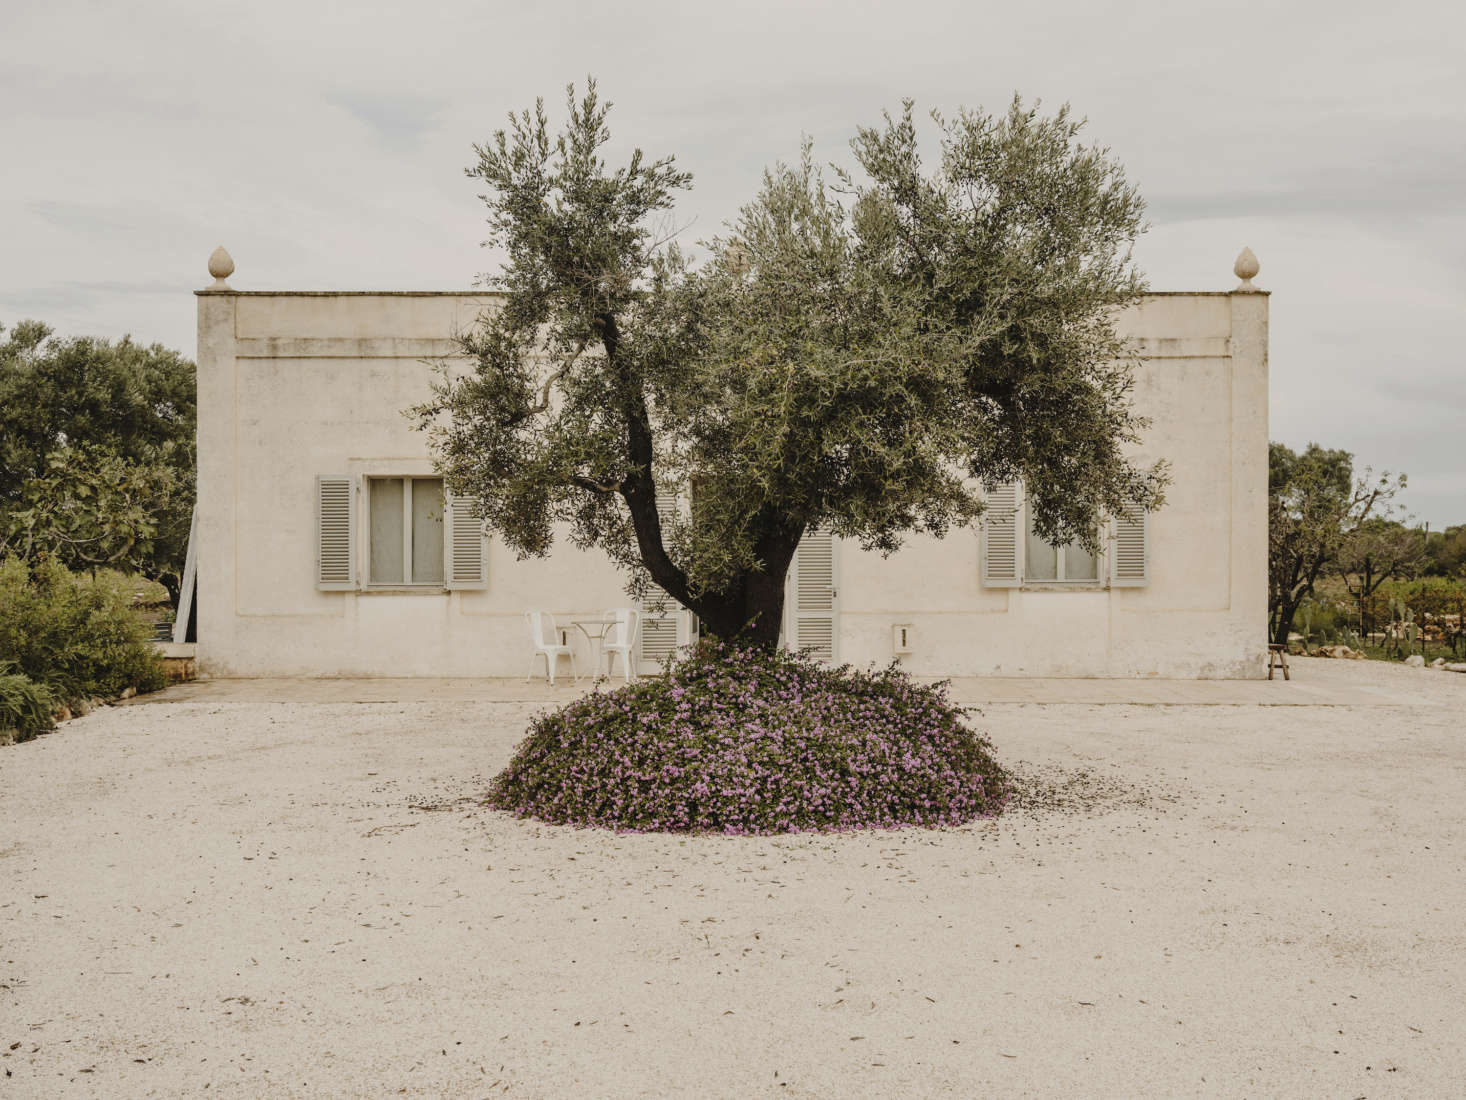 The villa blends into the landscape, guarded by olive trees.